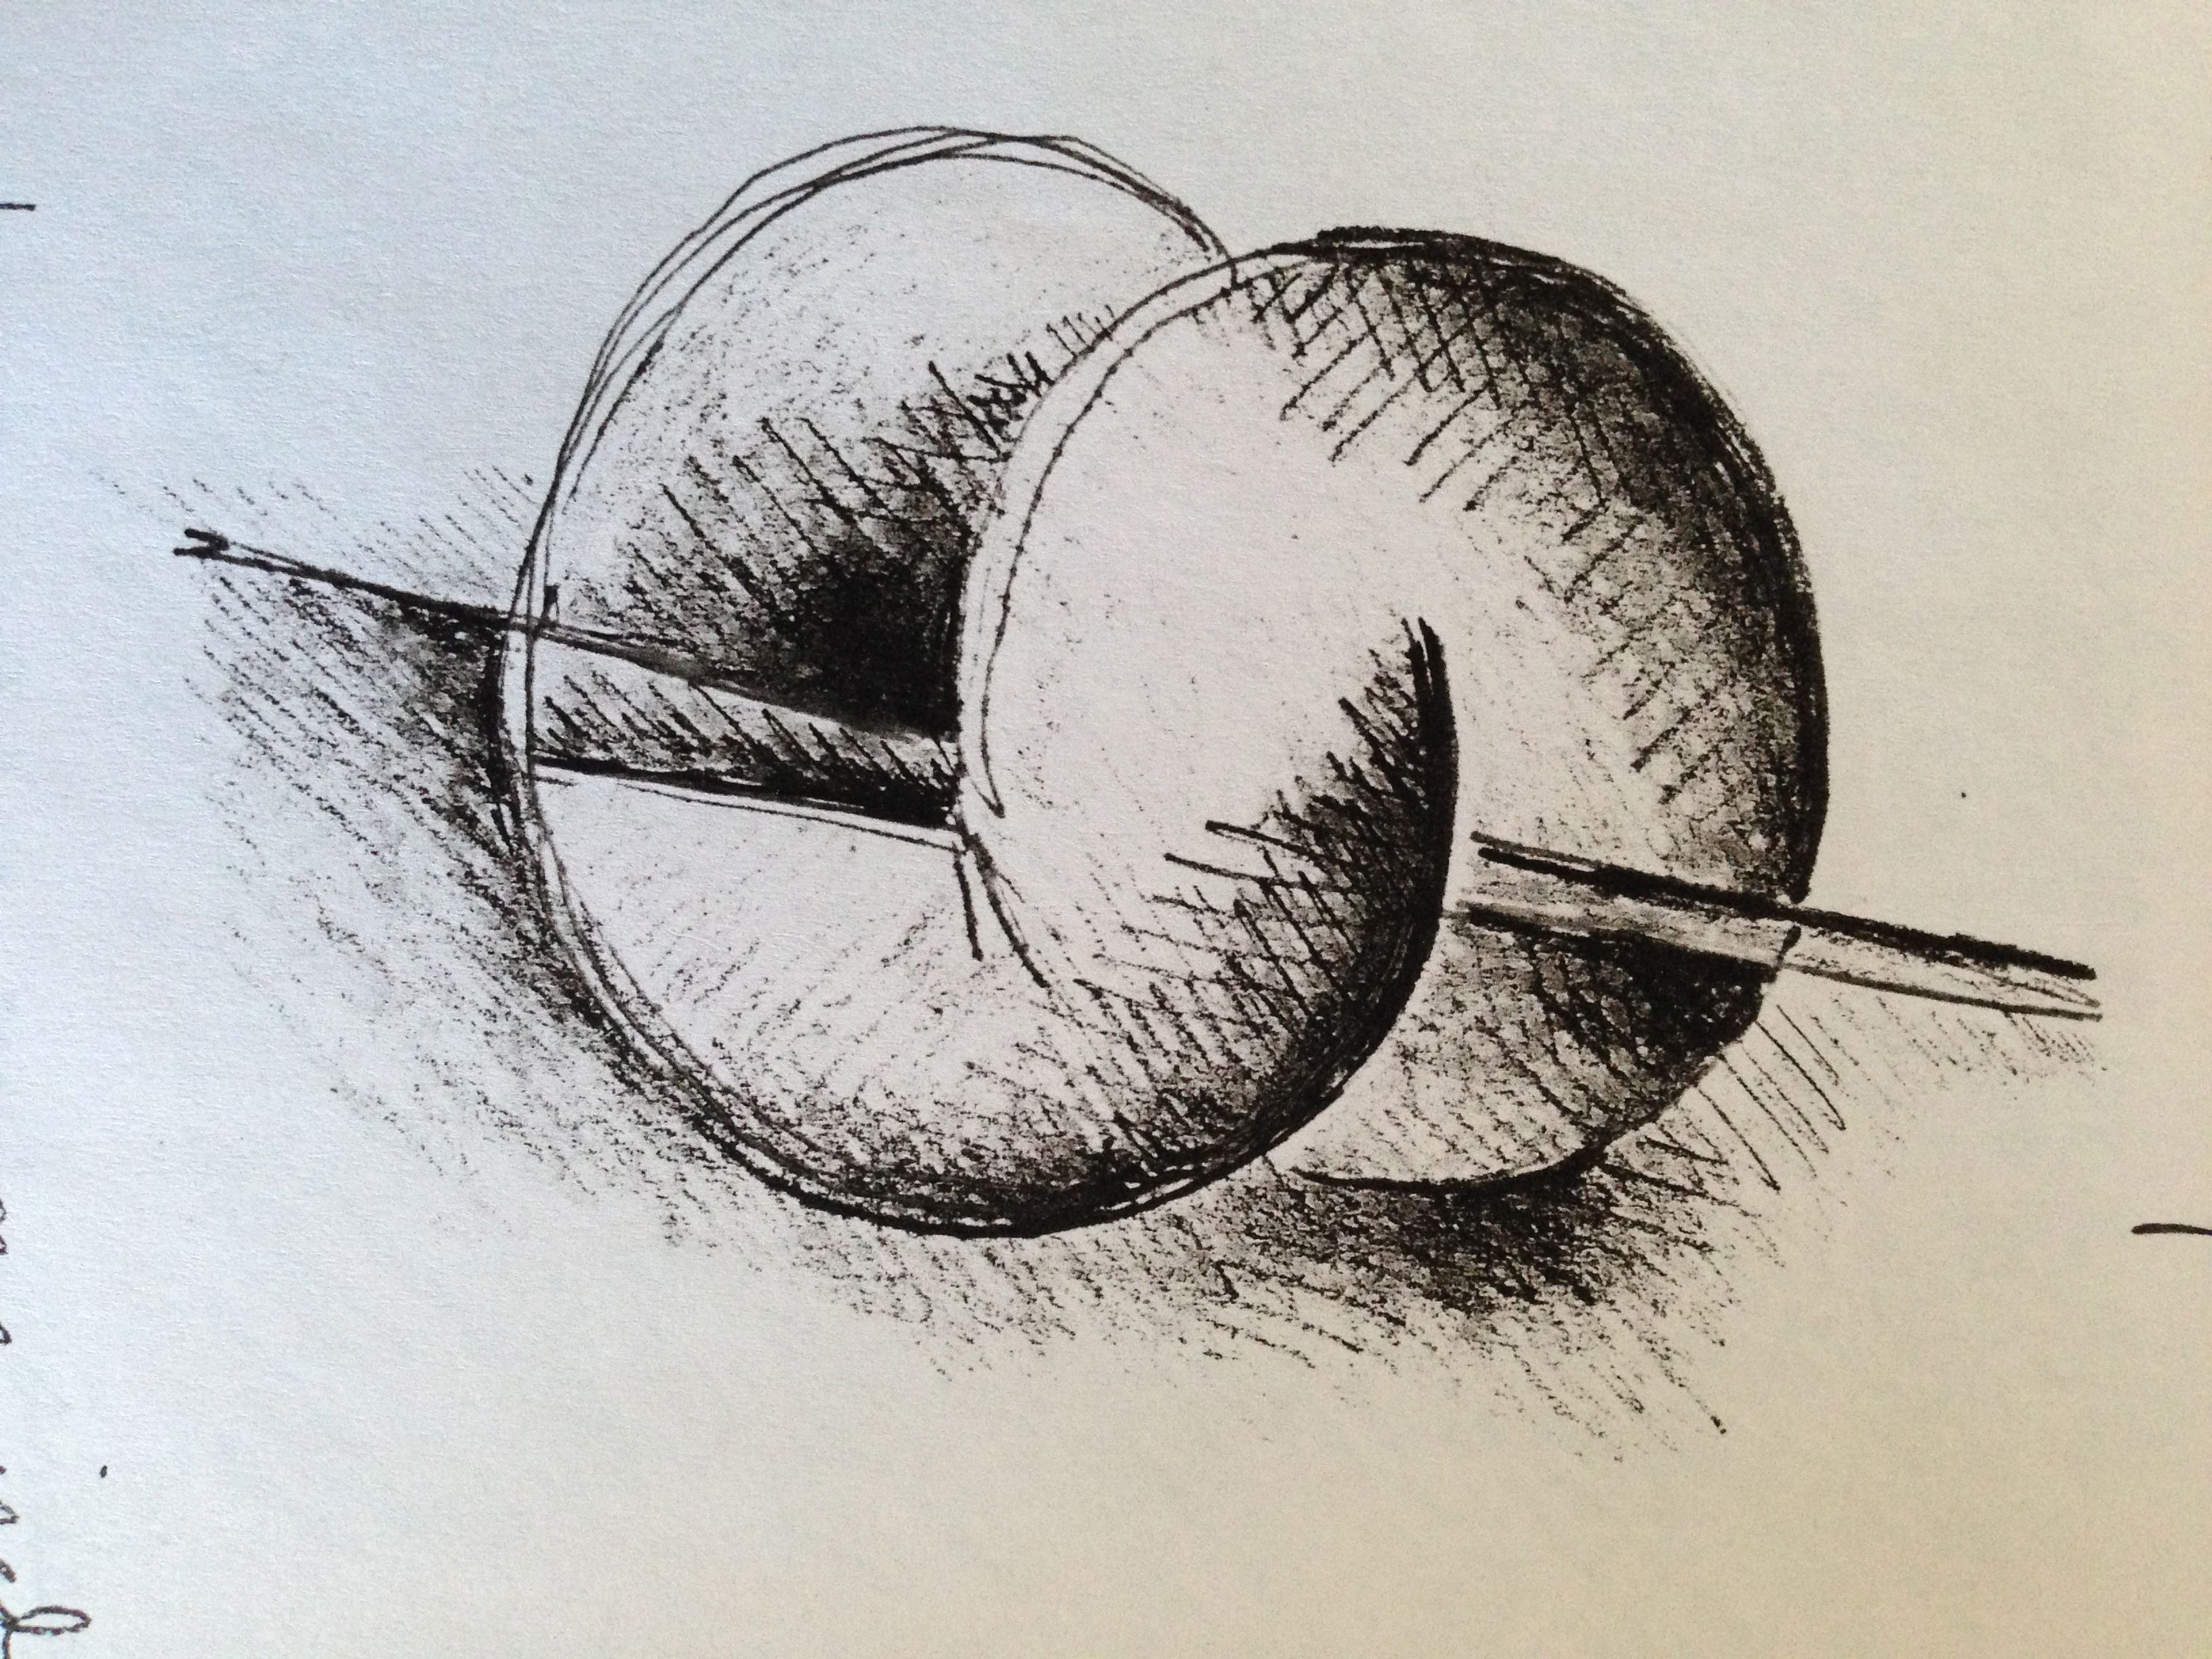 Graphite abstraction - early work